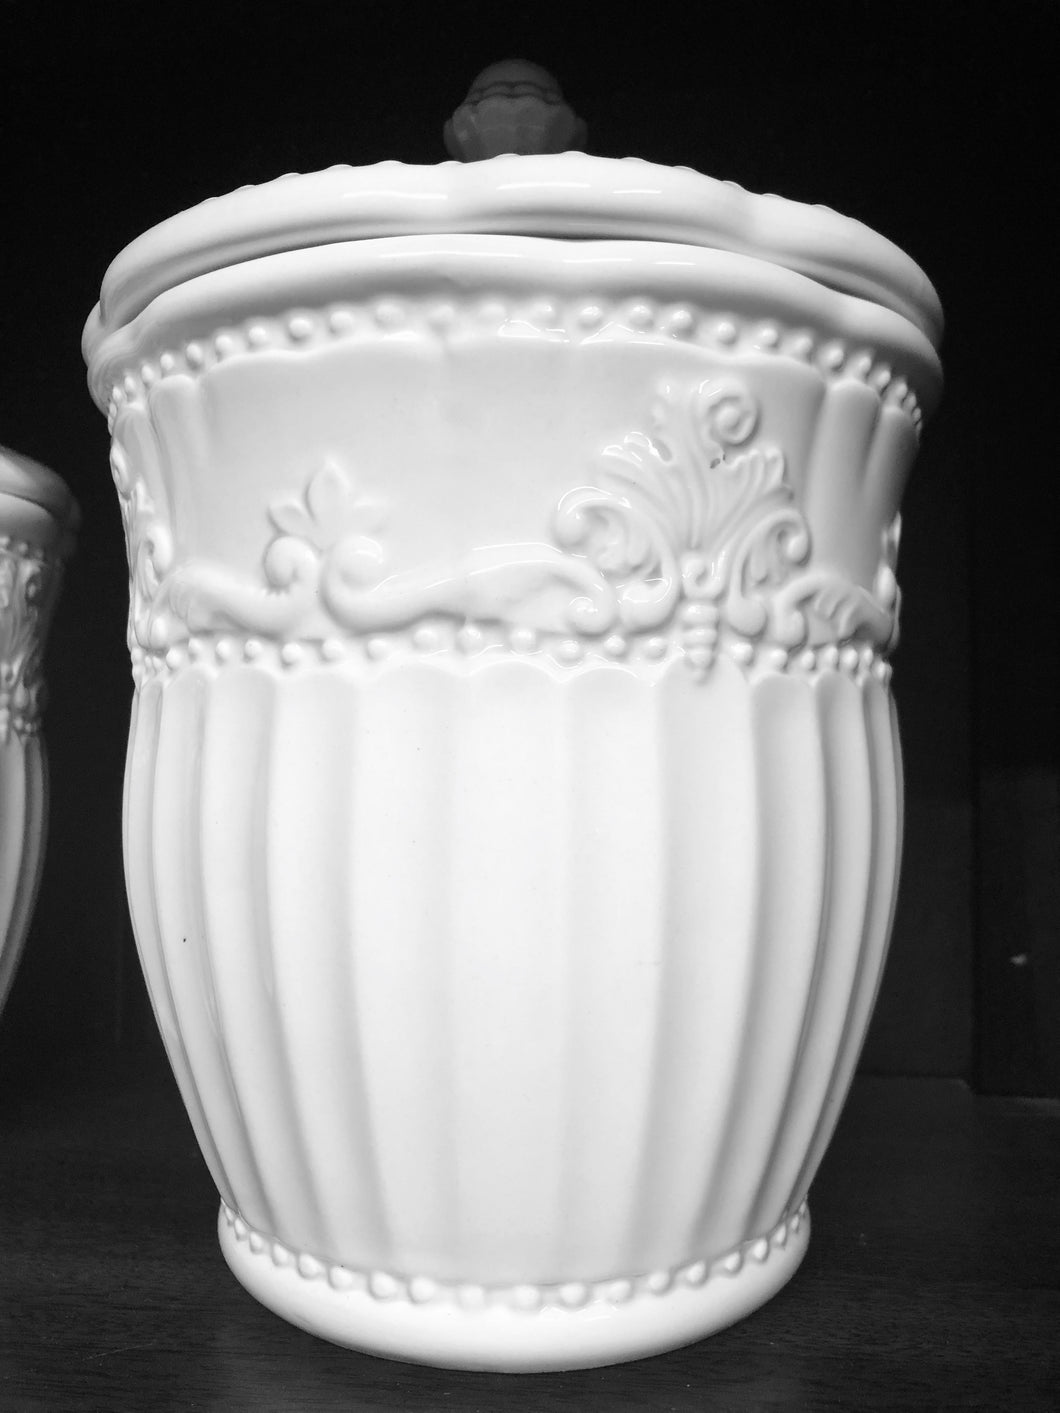 Ceramic White Containers